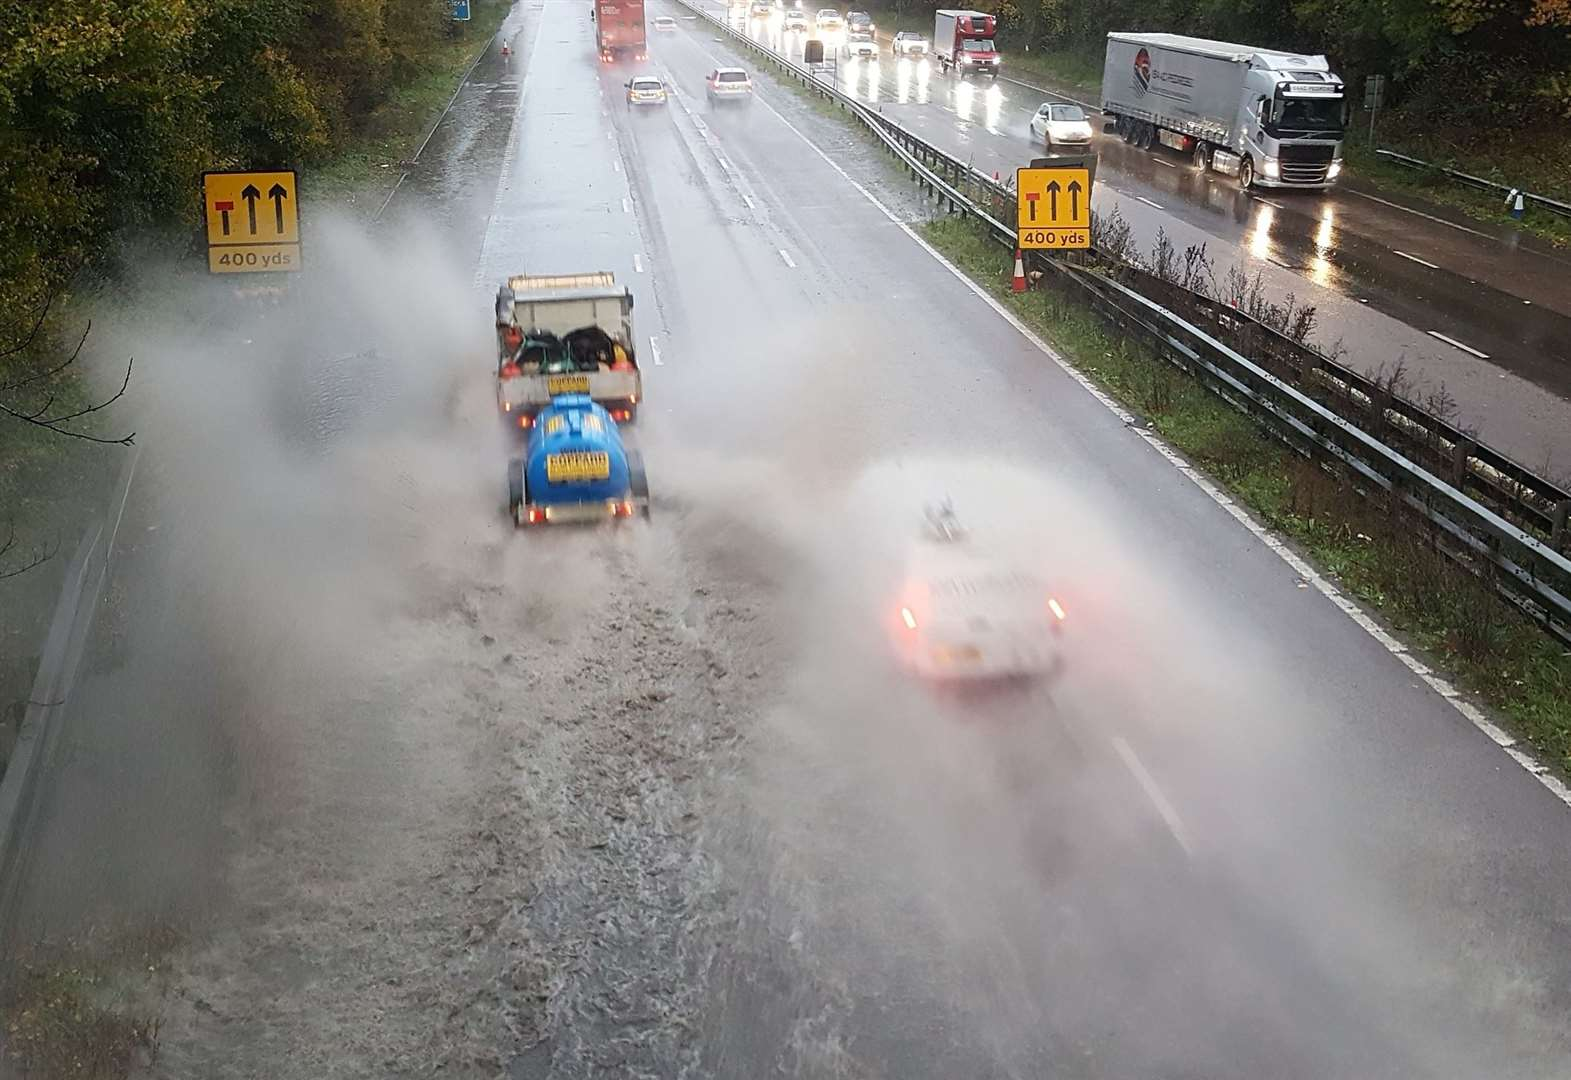 Rain causes perilous driving conditions